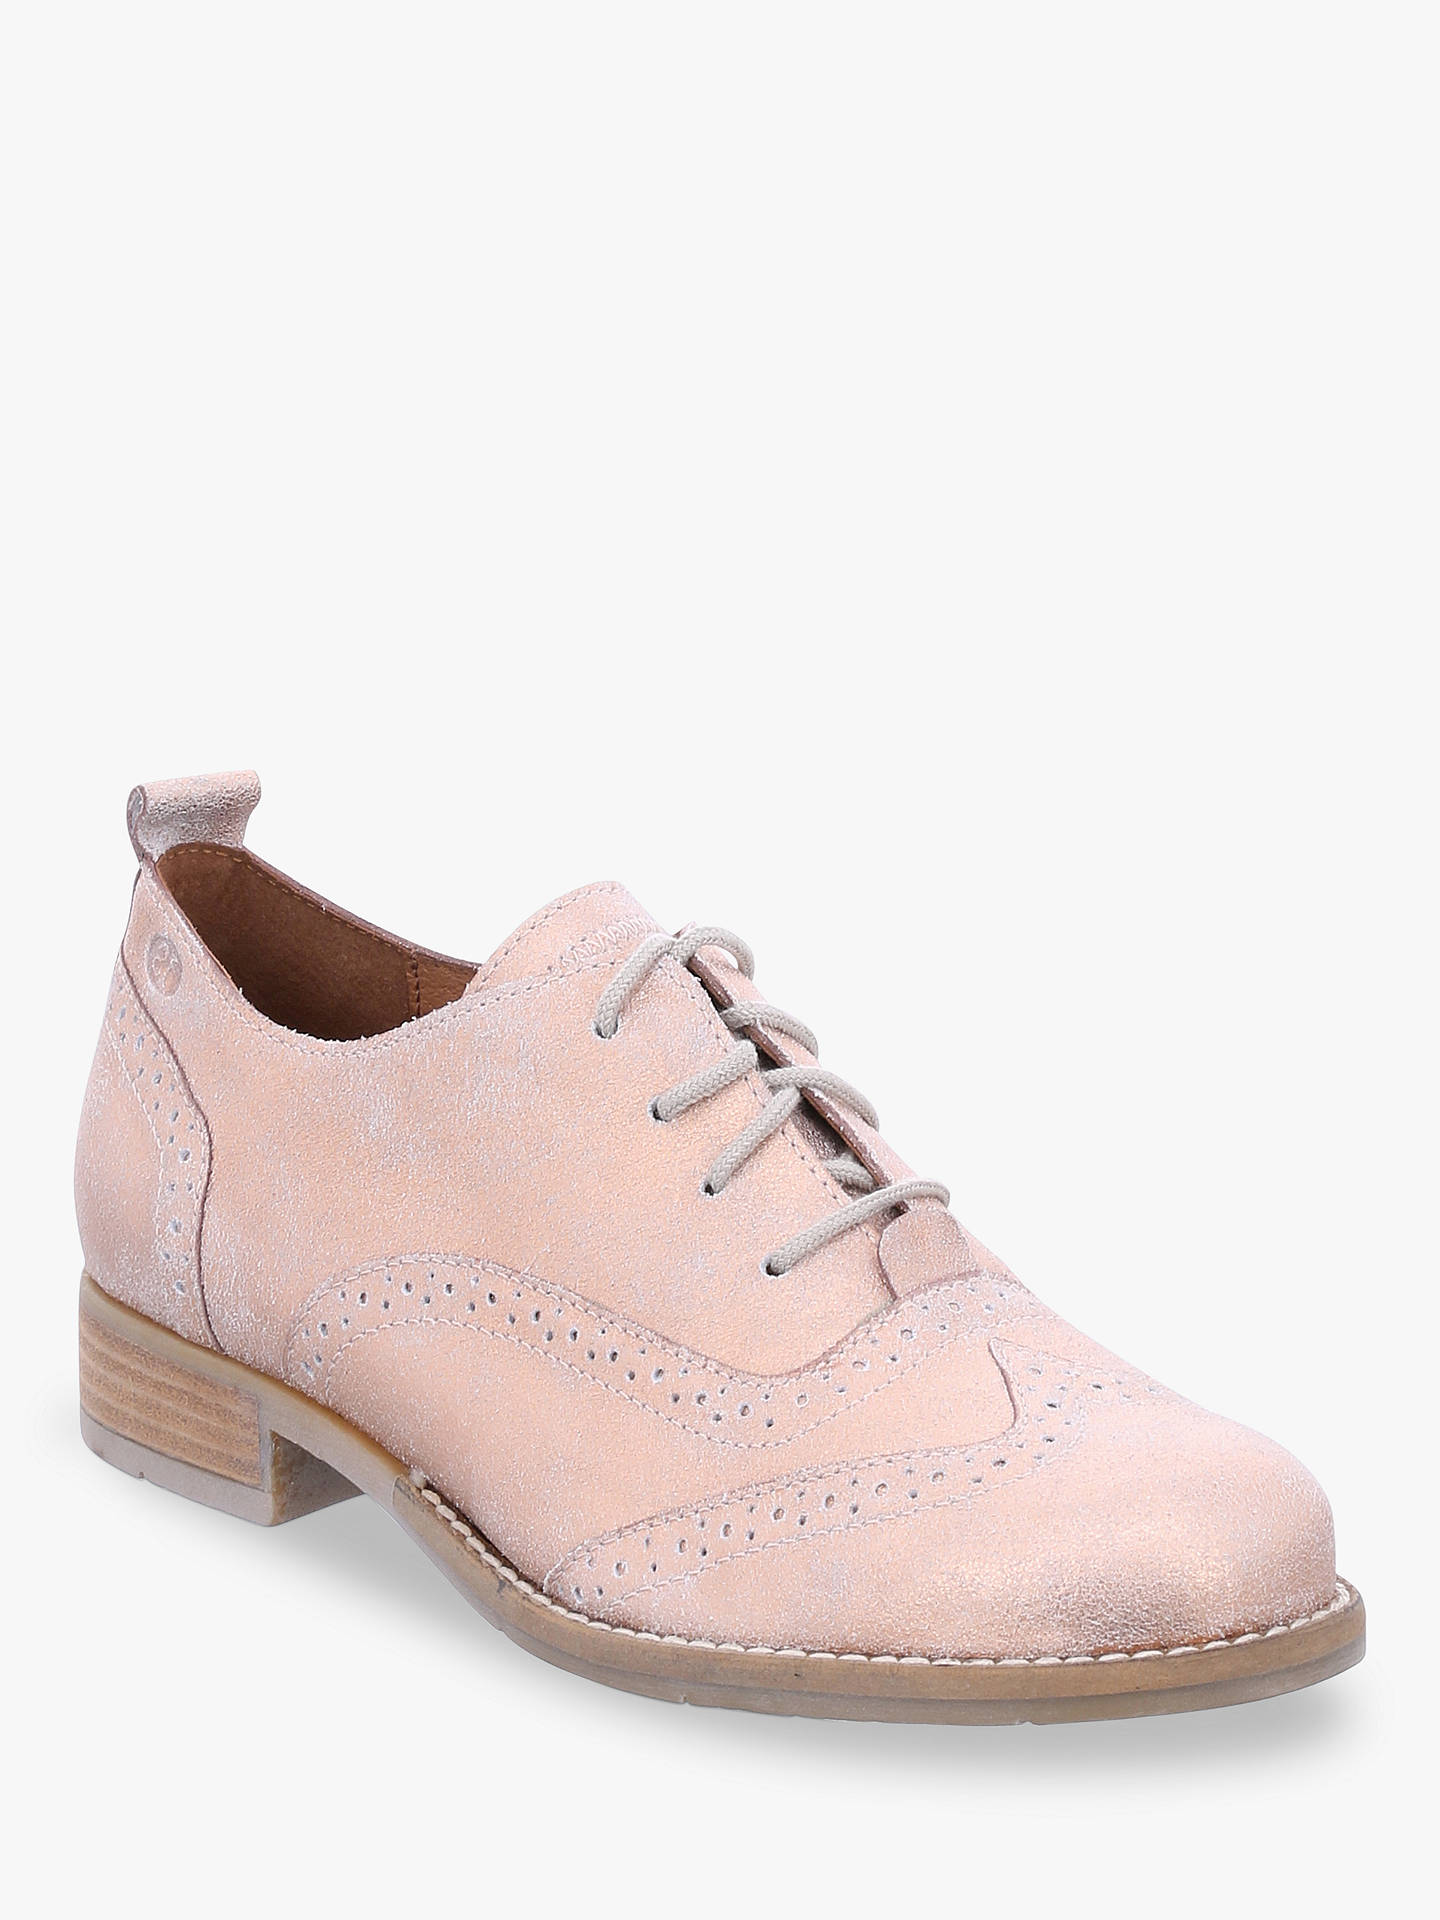 Josef Seibel Sienna 89 Lace Up Brogues, Nude Leather at